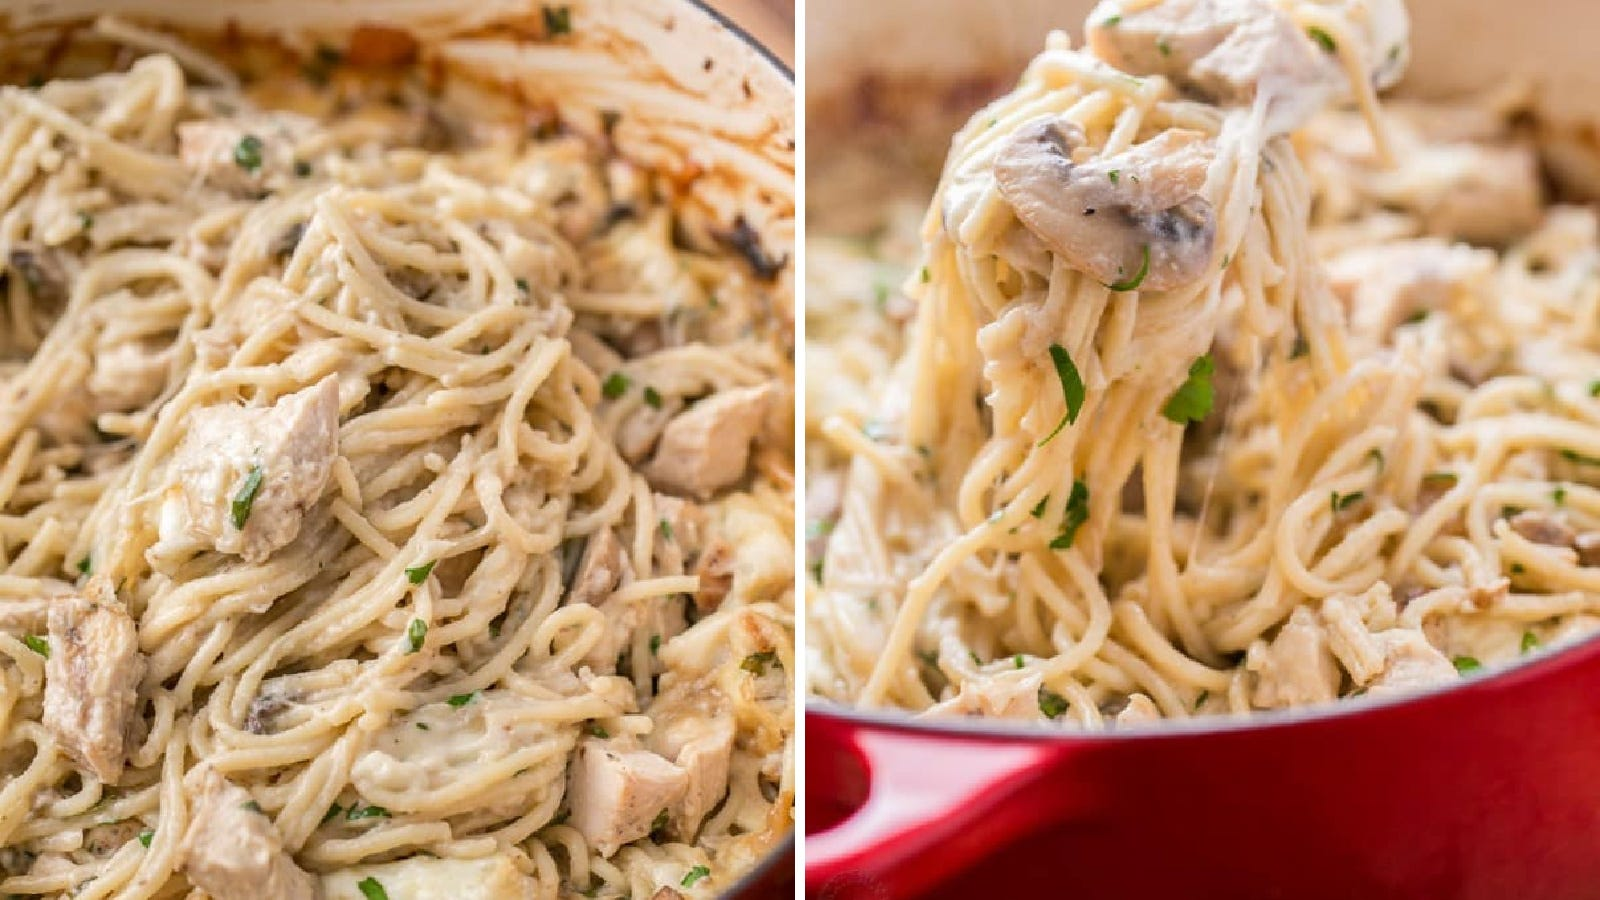 Two images displaying Chicken Tetrazzini made by Natasha's Kitchen in a red Dutch Oven.